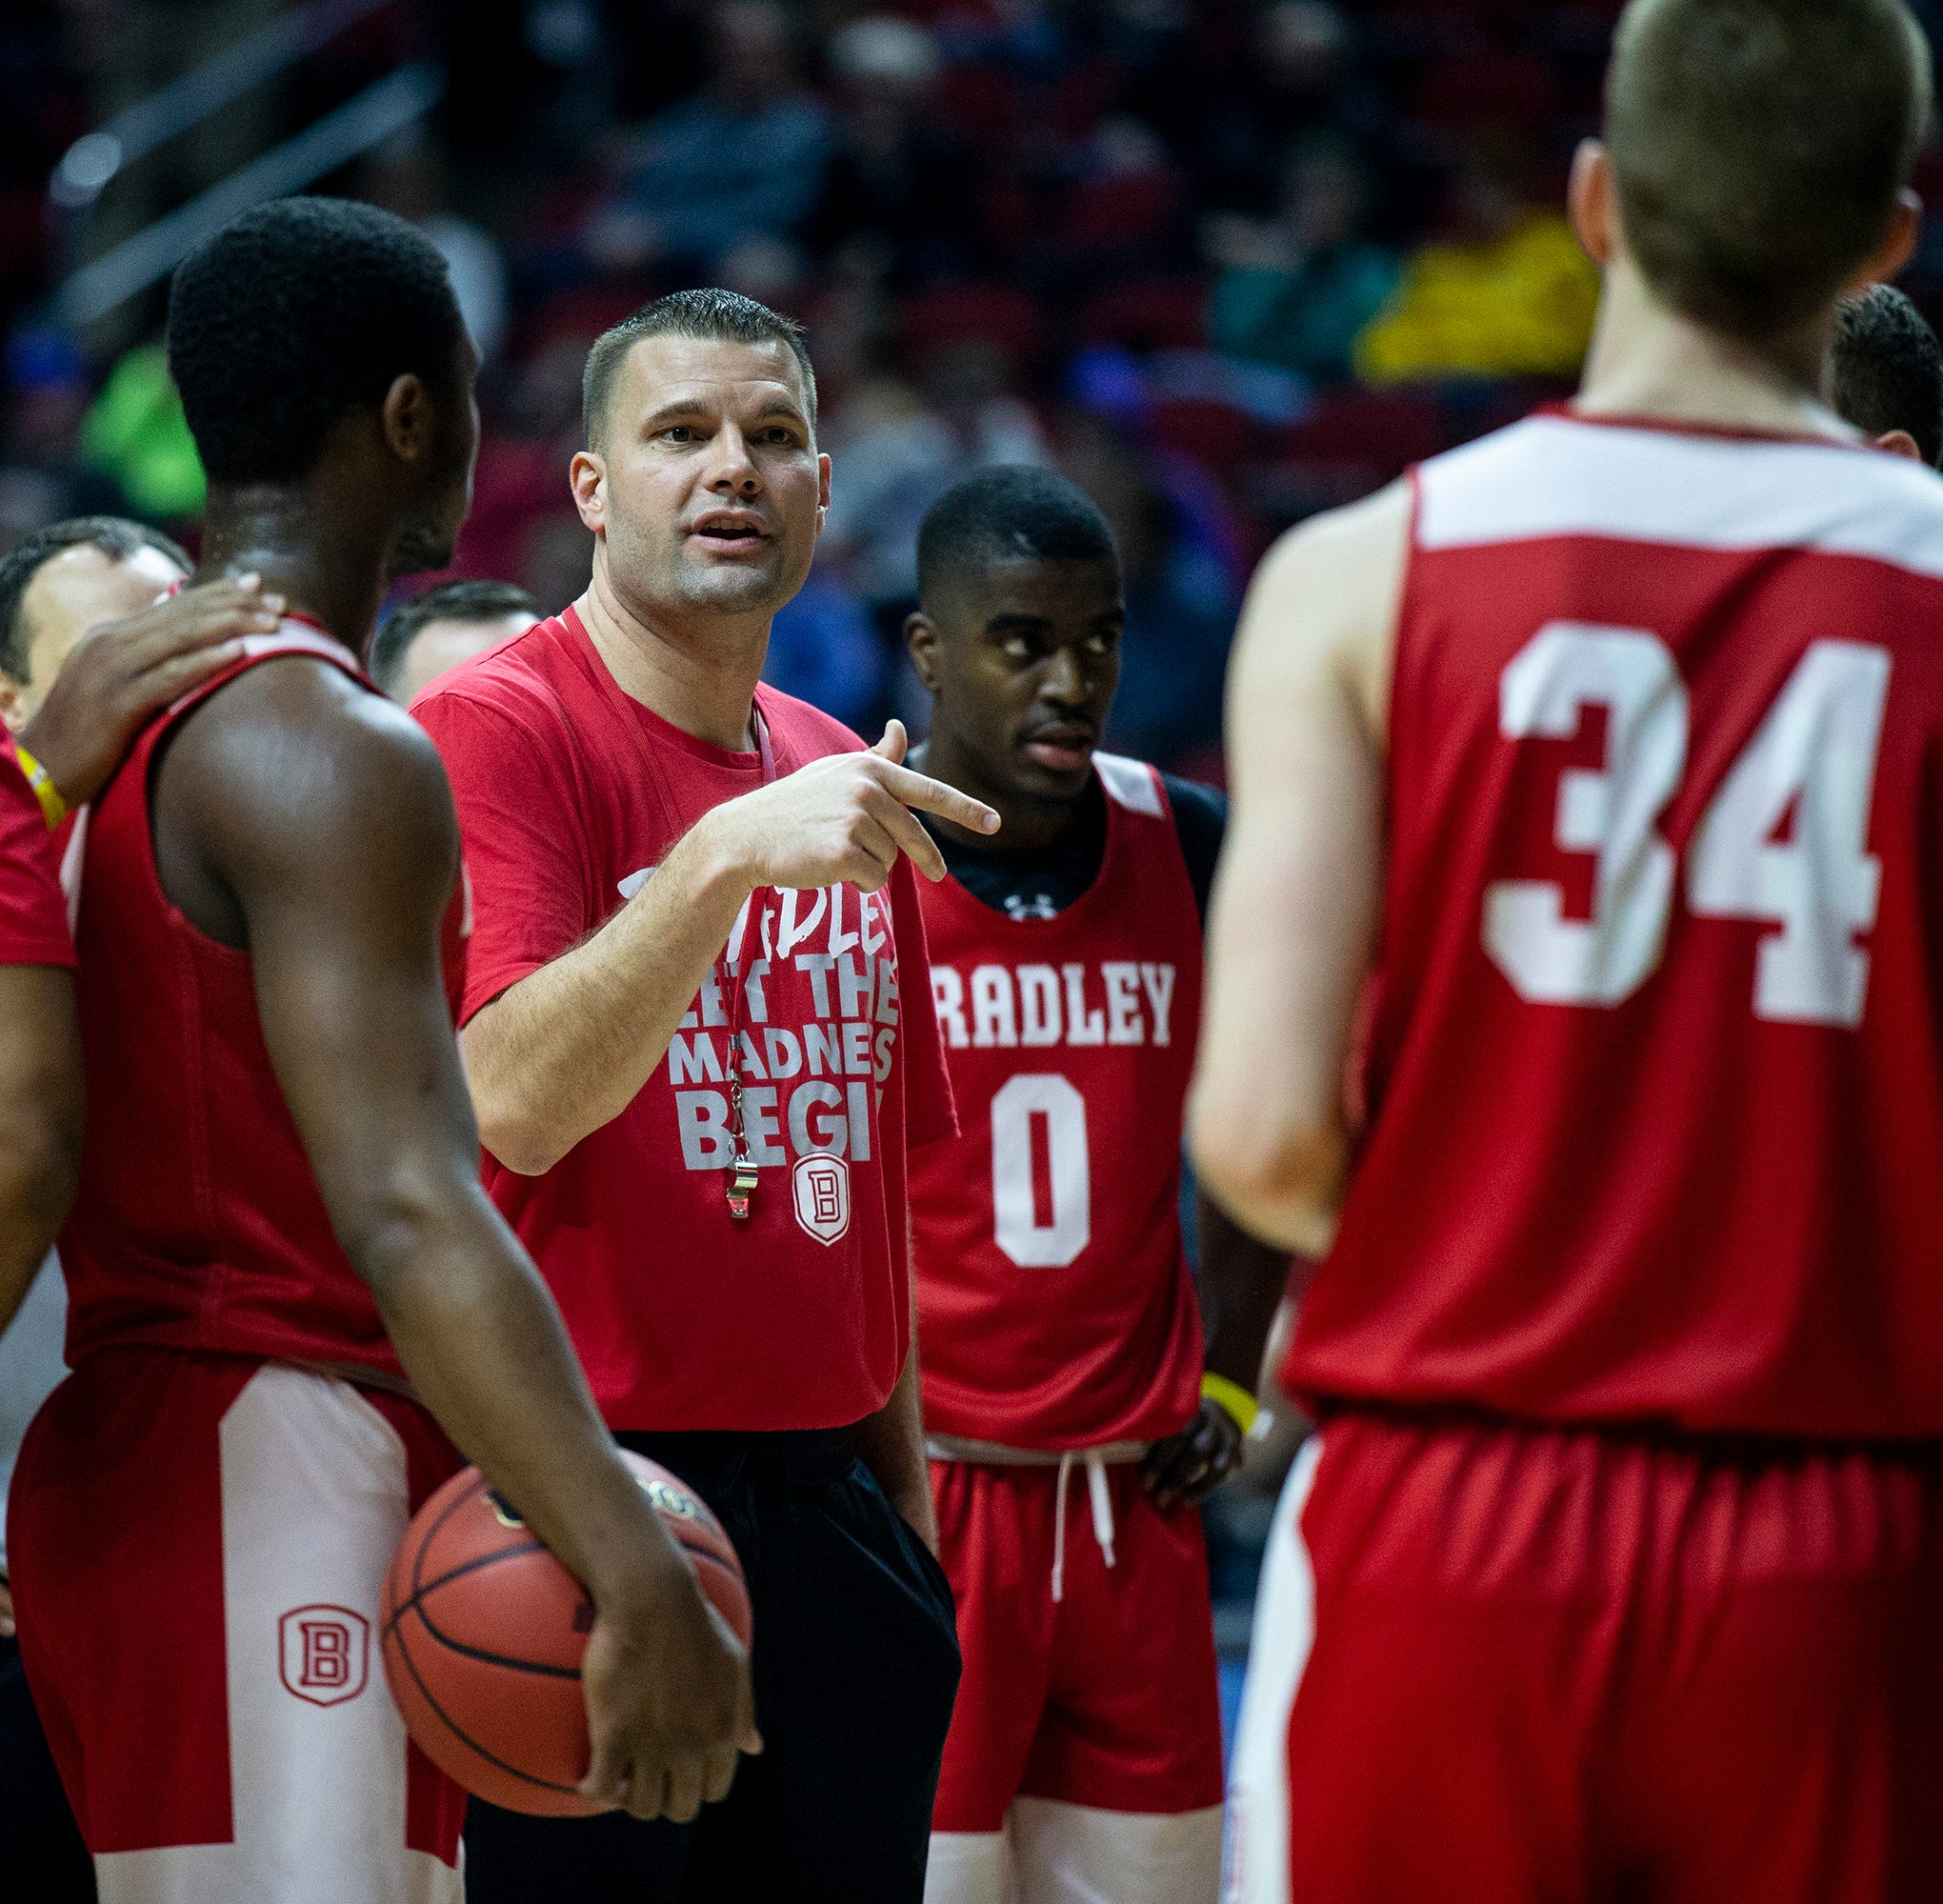 Bradley coach Brian Wardle contrite after controversy over targeting reporter: 'You've got to own it'